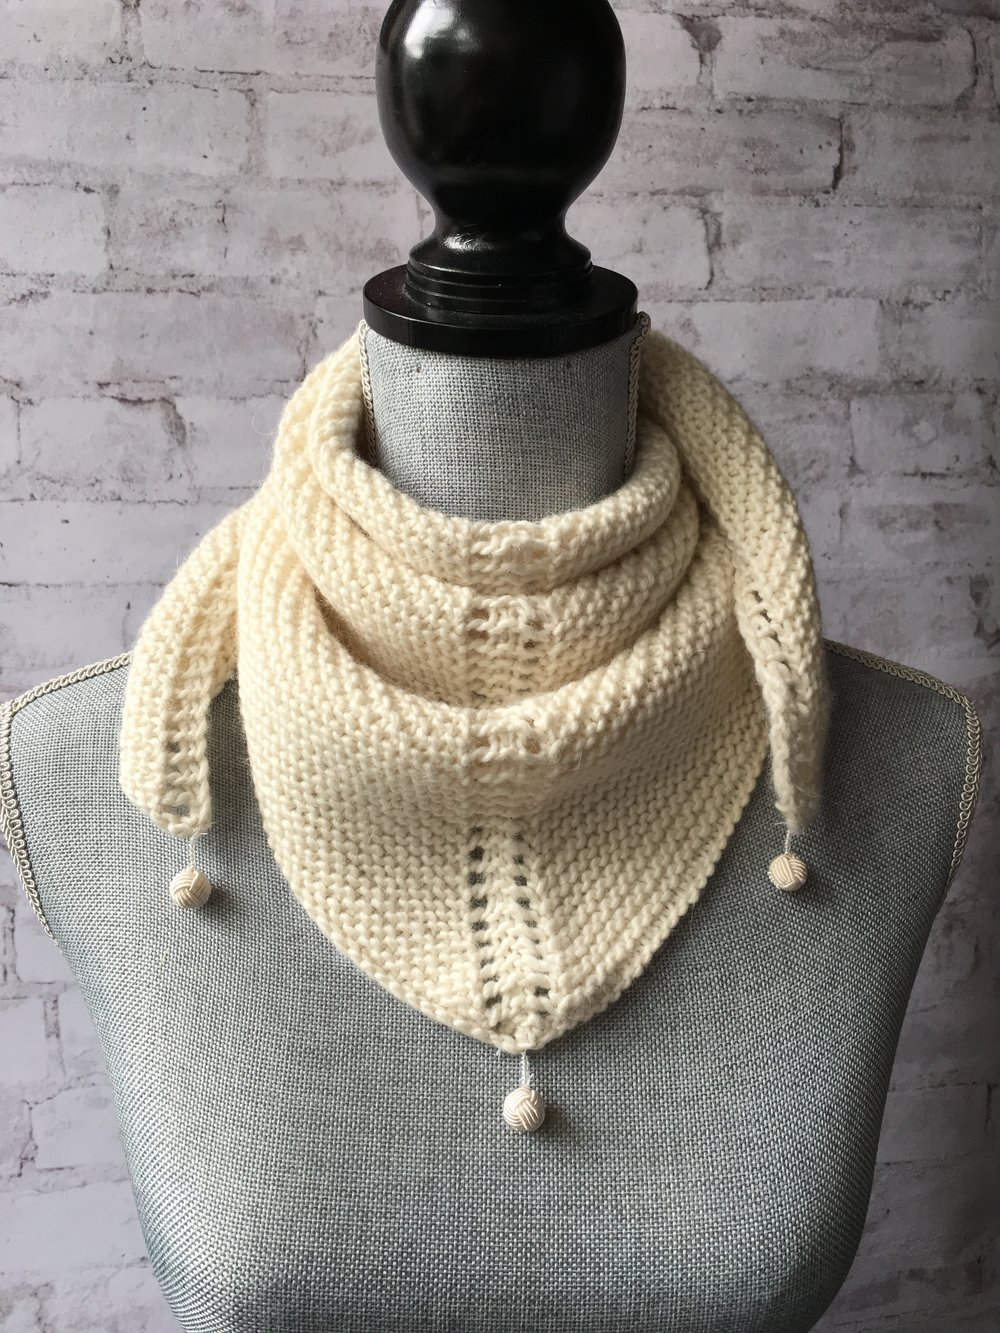 Dovetail Scarf (Worsted) Kit